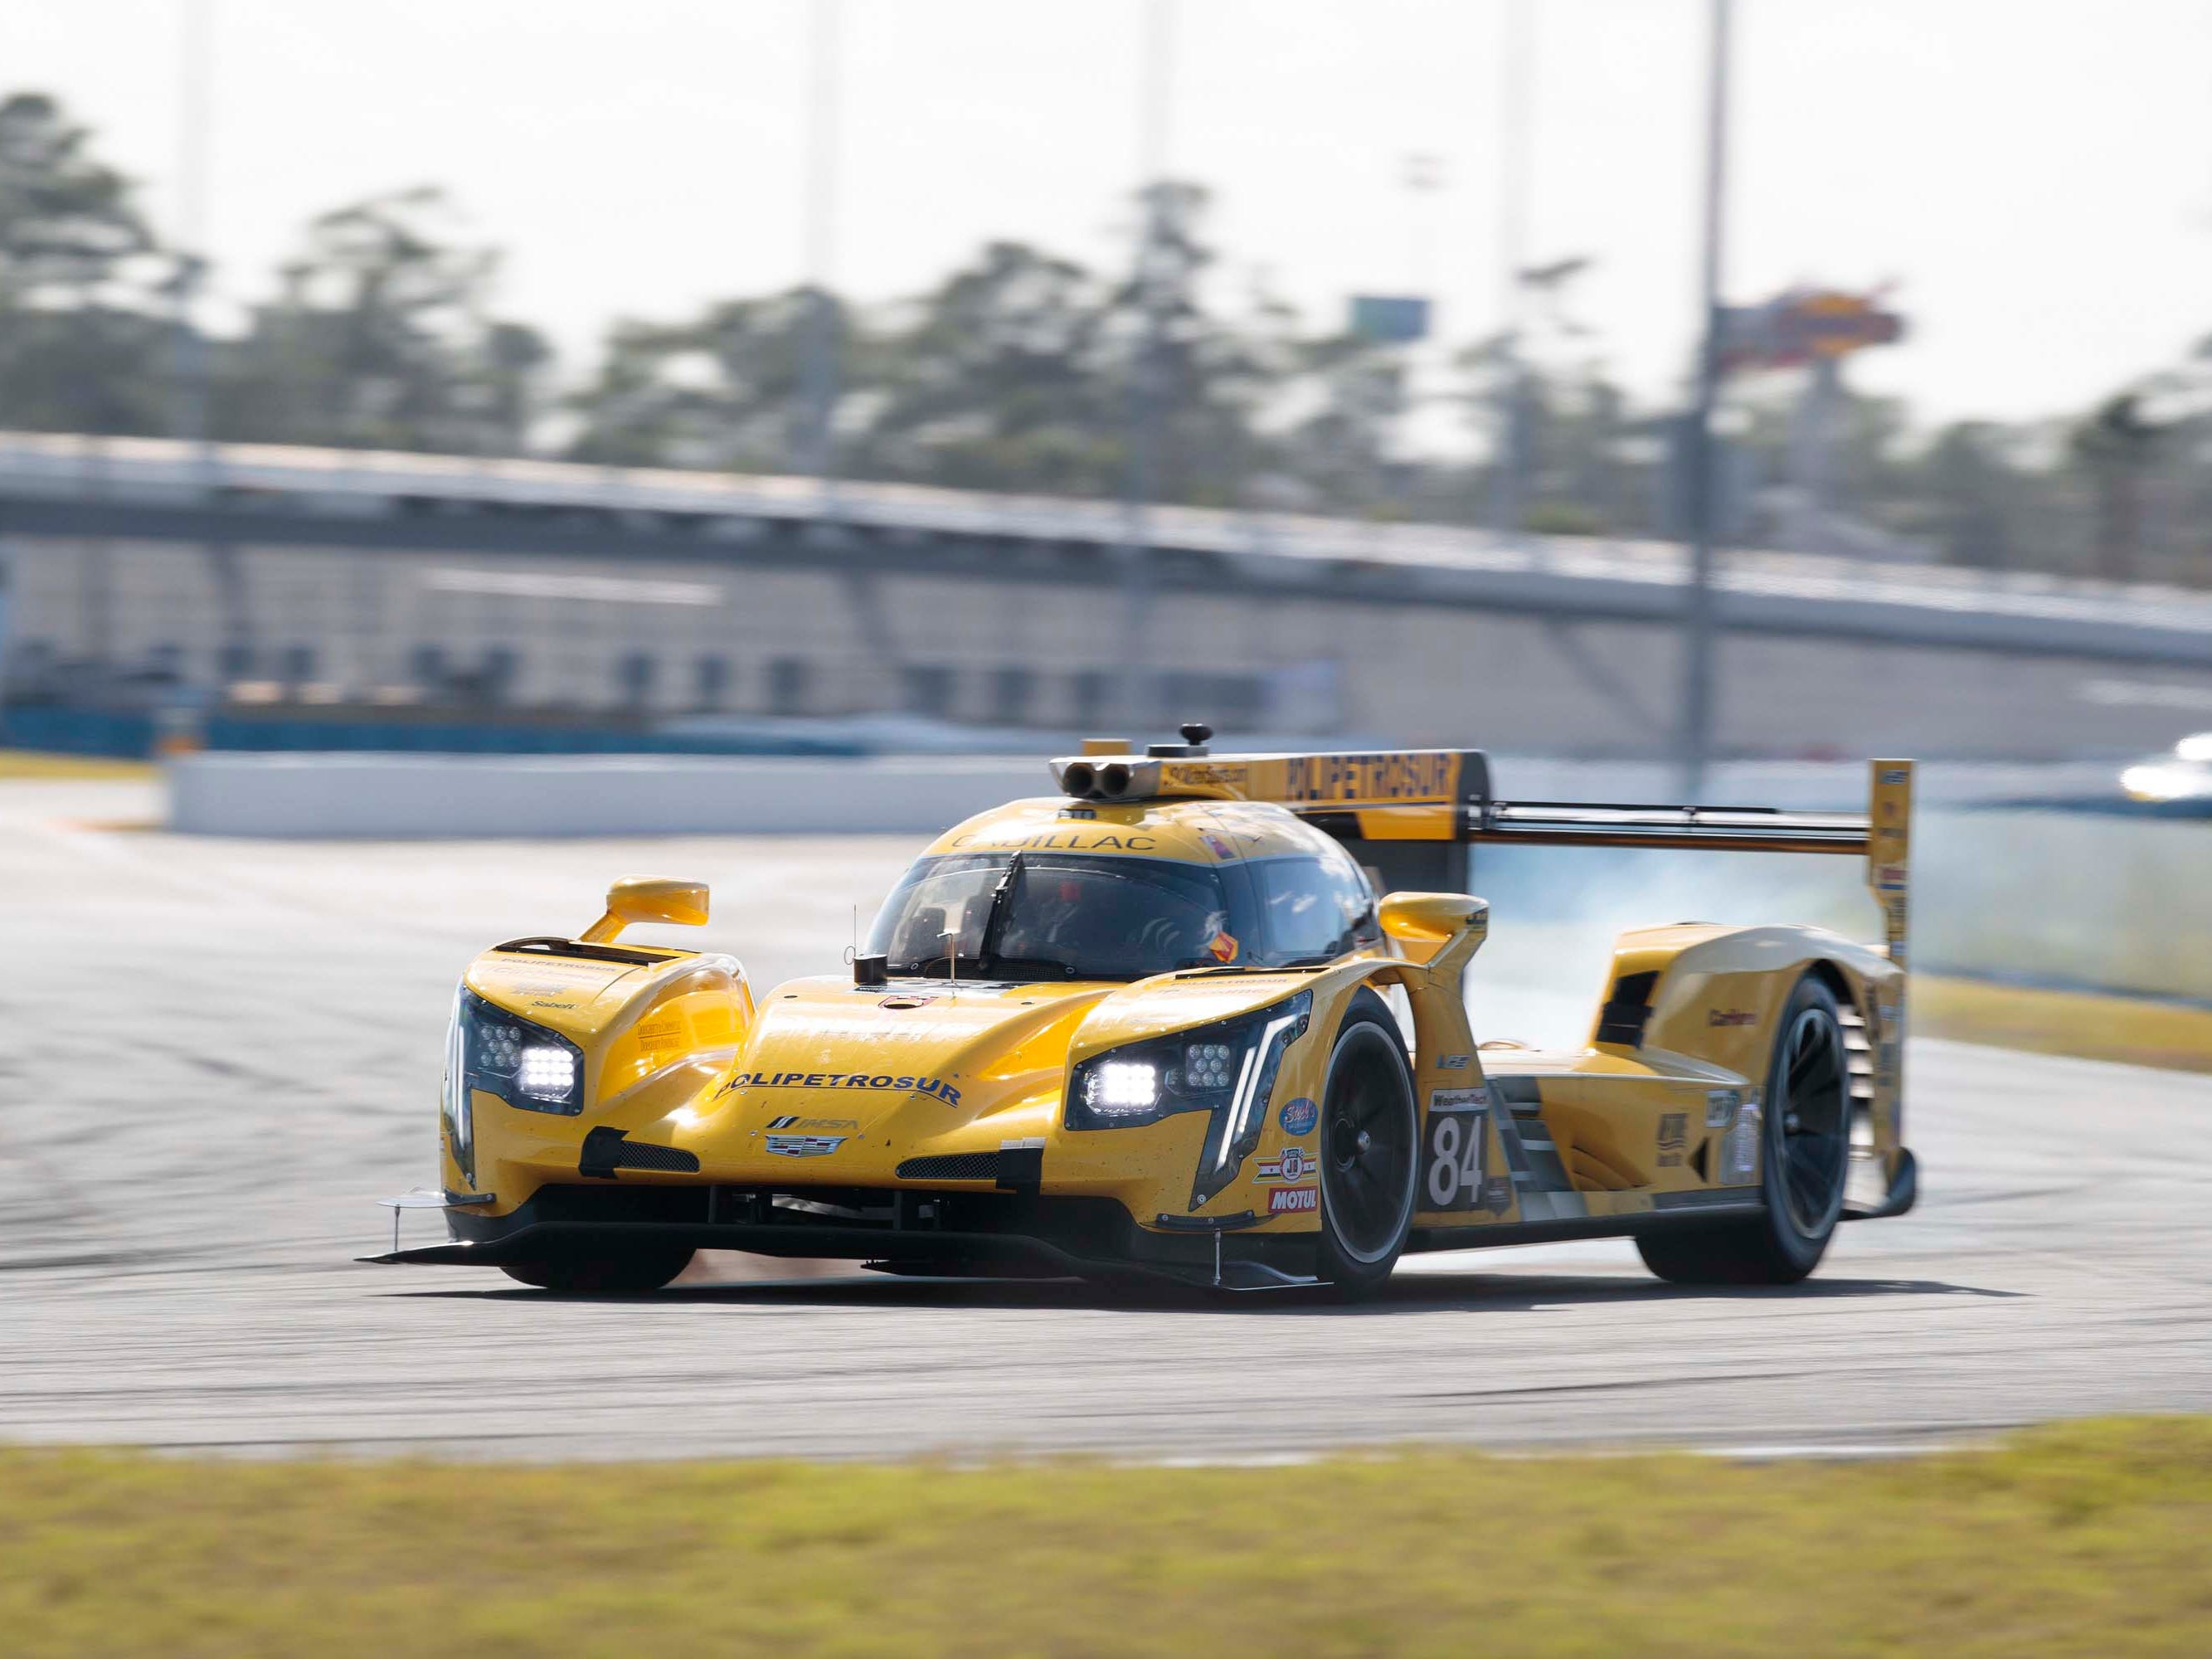 The Cadillac DPi-V.R has finsihed 1-2 at the Rolex 24 Hours of Daytona three years running -- becoming the dominant car in a field that includes Nissan, Mazda, and Acura.